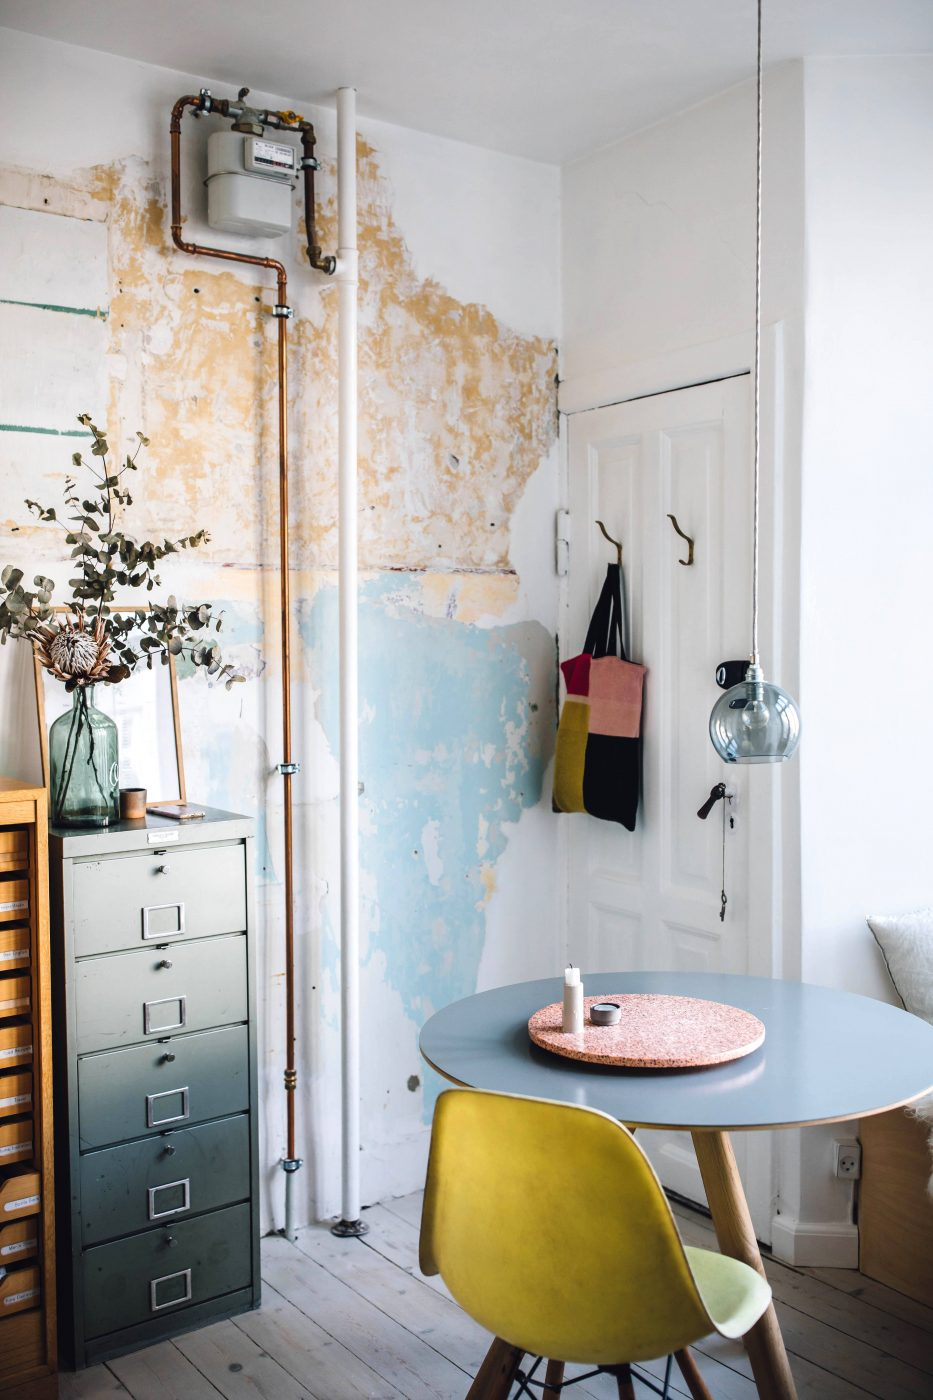 Image for Home Tour with Kate Imogen Wood in Copenhagen